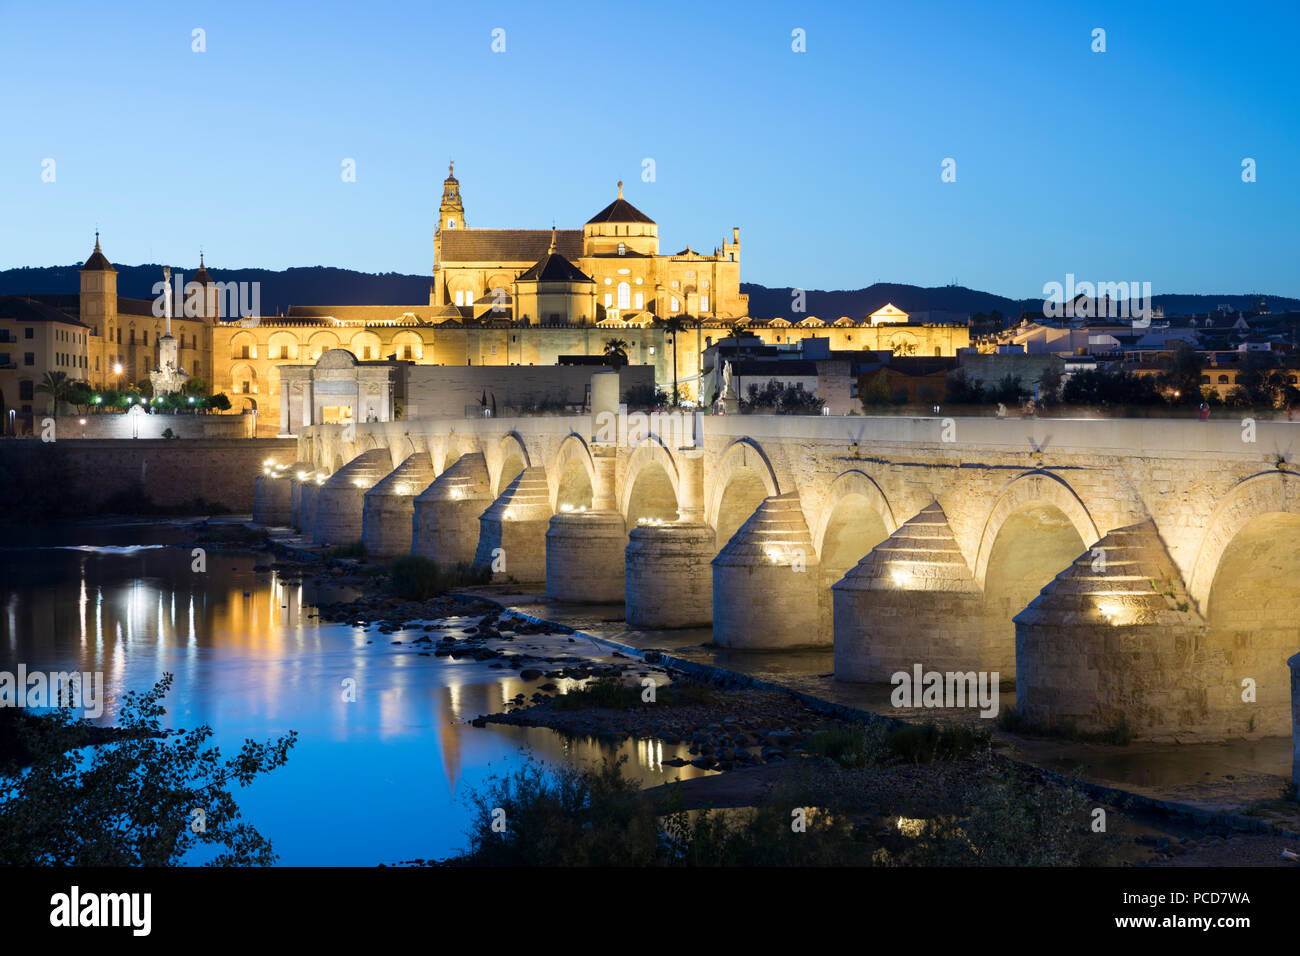 The Mezquita and Roman Bridge over the river Guadalquivir floodlit at night, Cordoba, Andalucia, Spain, Europe - Stock Image